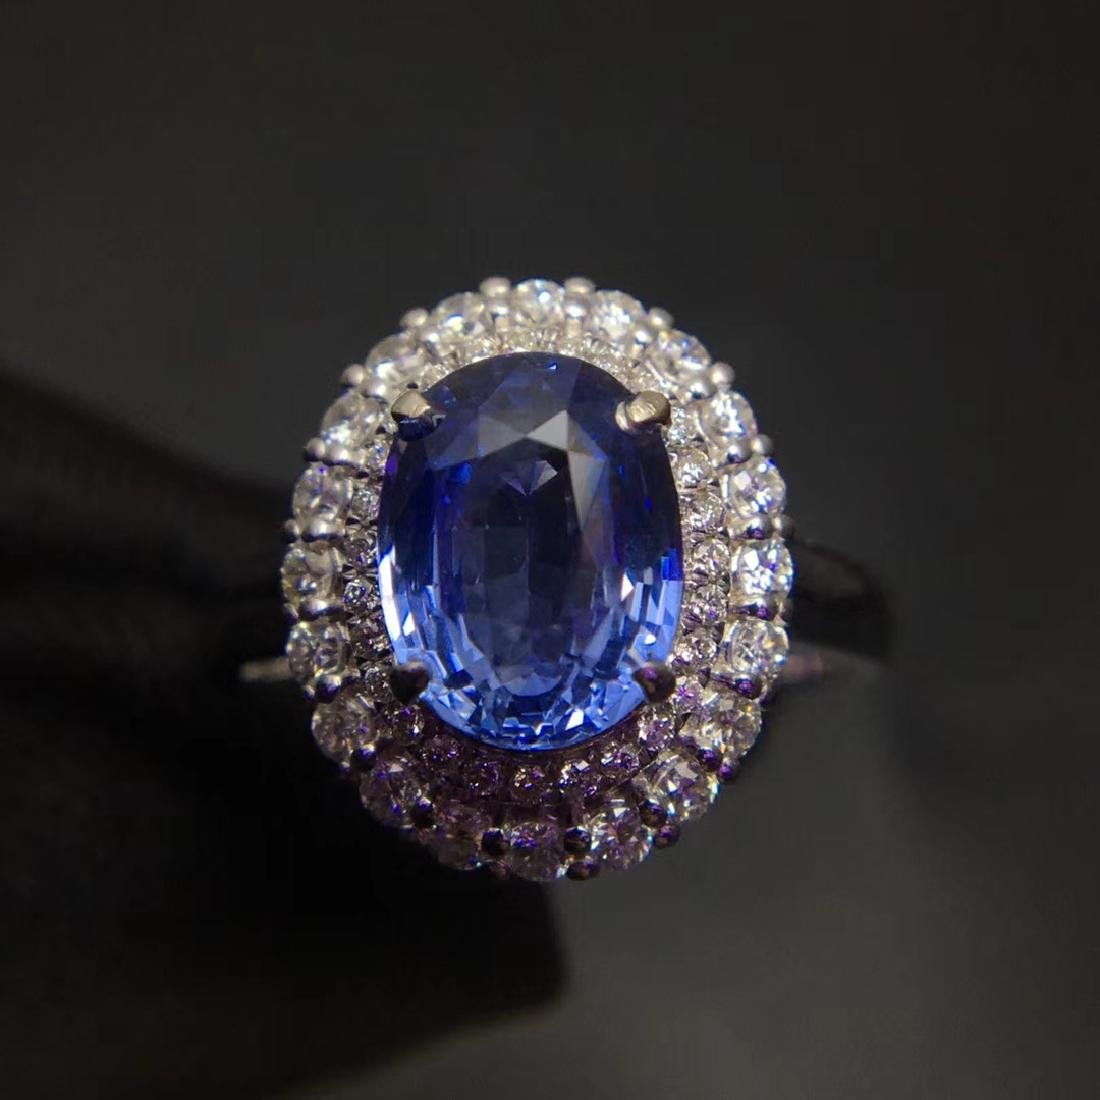 2.59ct Sapphire Ring in 18kt White Gold